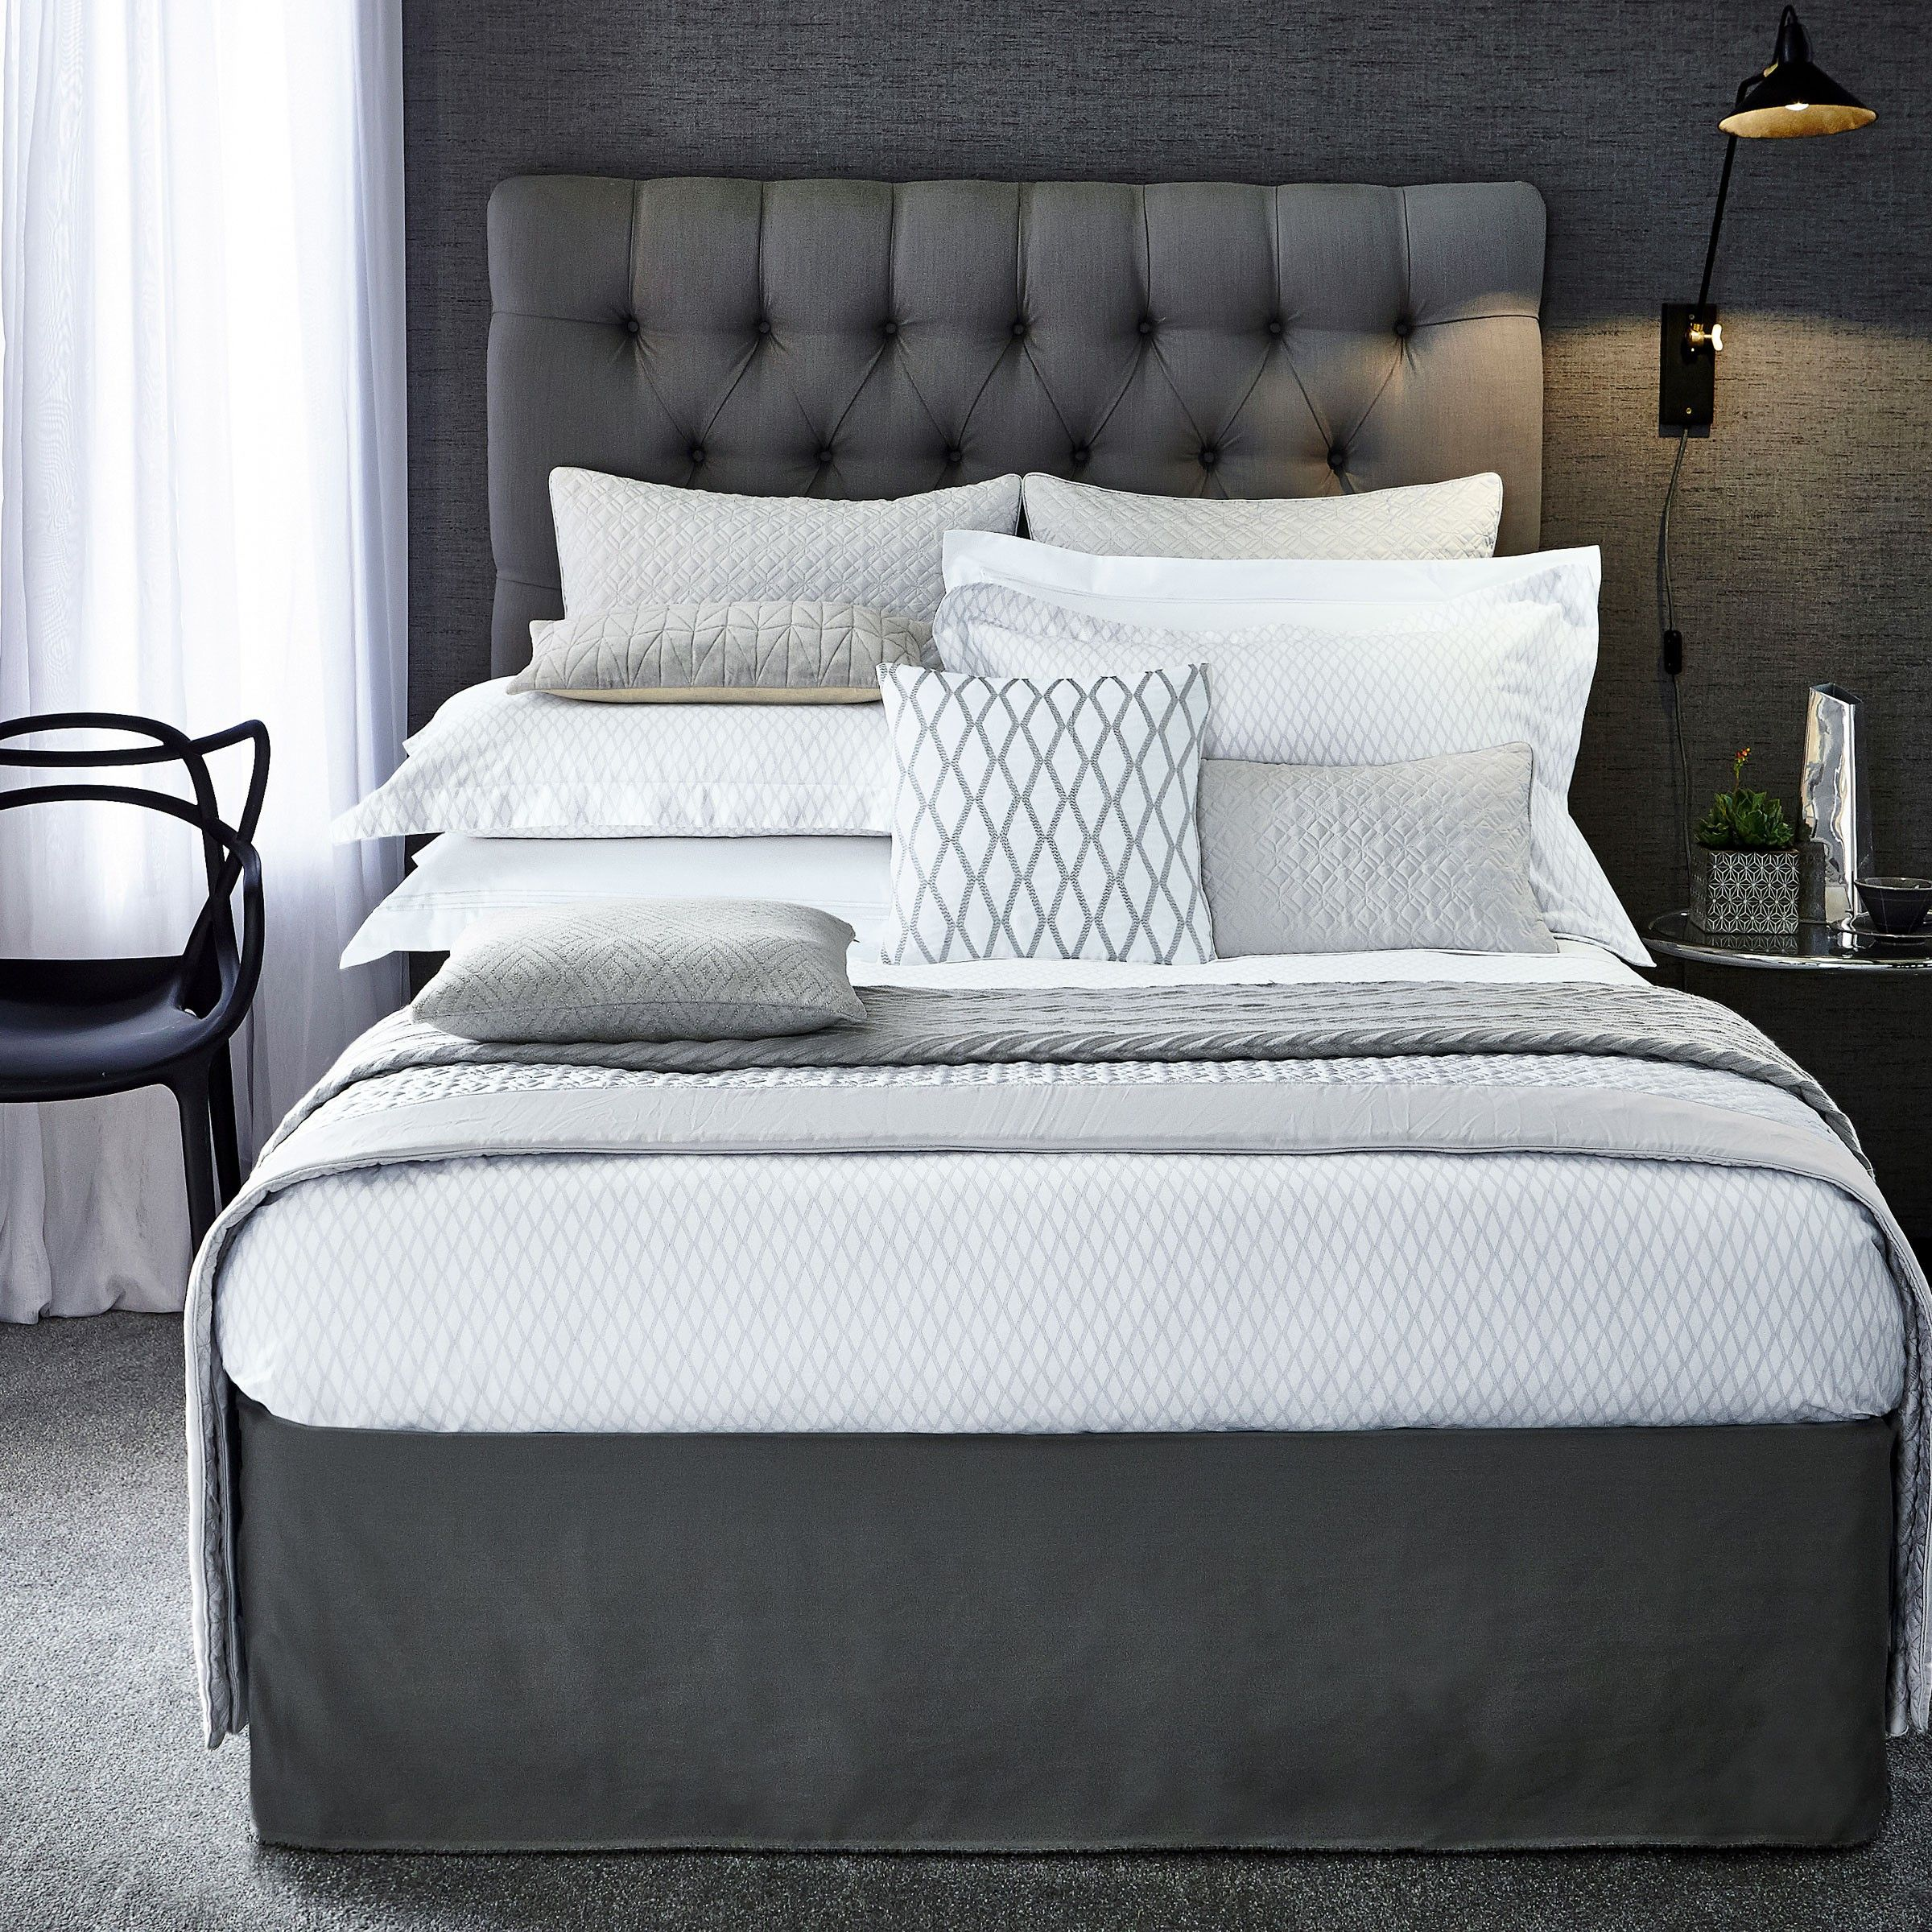 collections the dreams collection coast pacific hotel nc image prod with have bedding hotelwgd blog sweet comforter